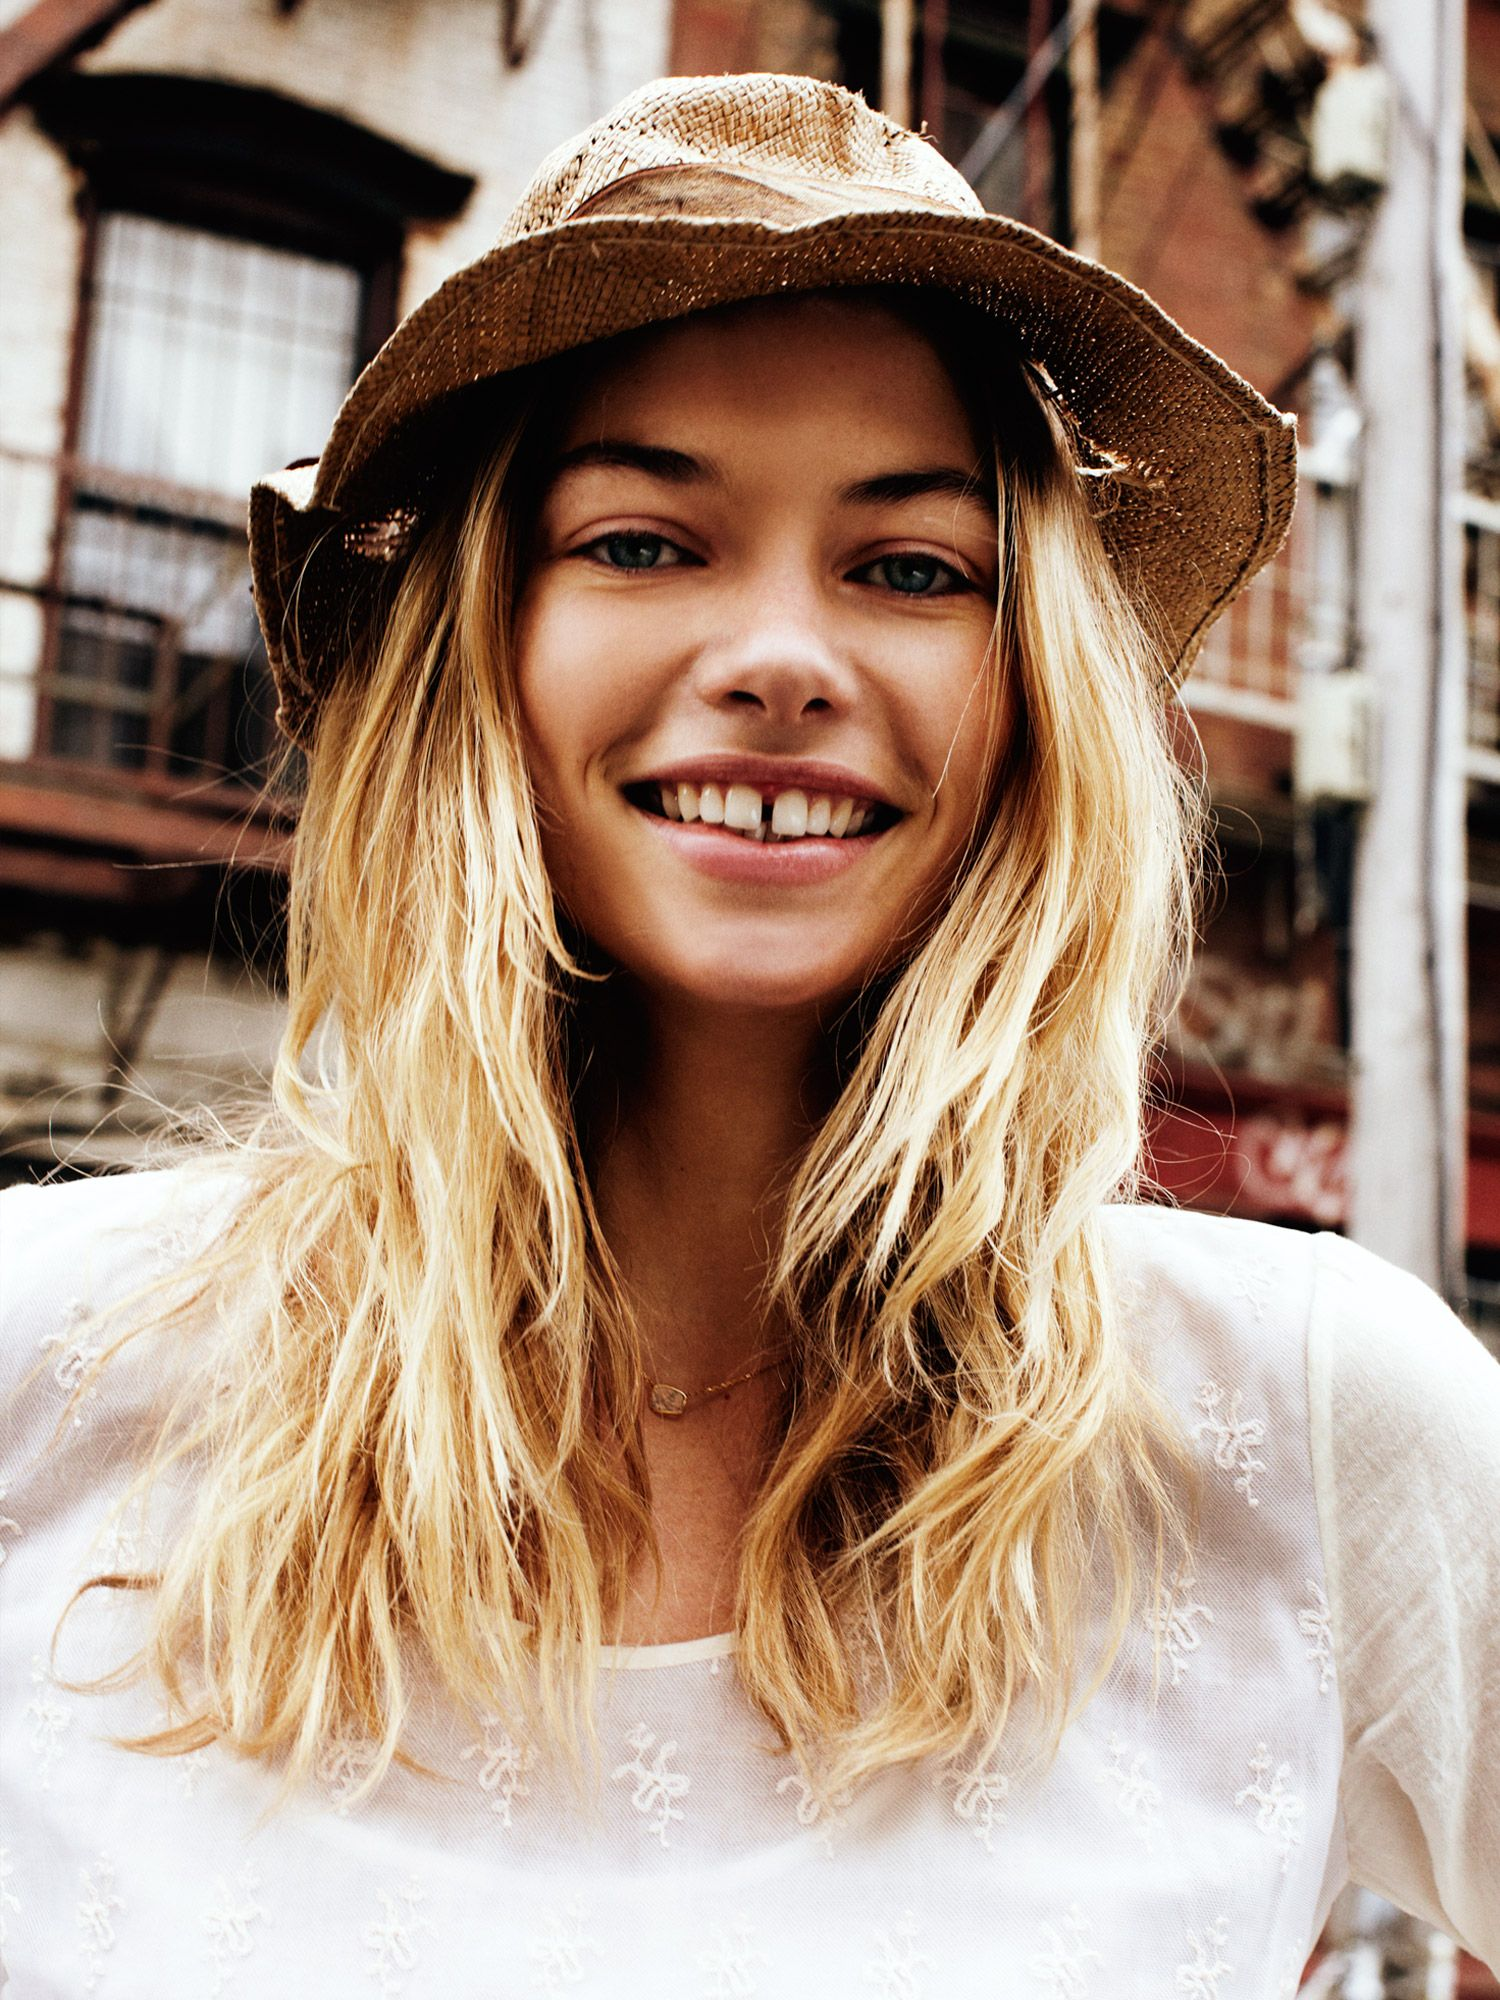 Pin by Bruna Oliveira on looks i like Gap teeth, Jessica